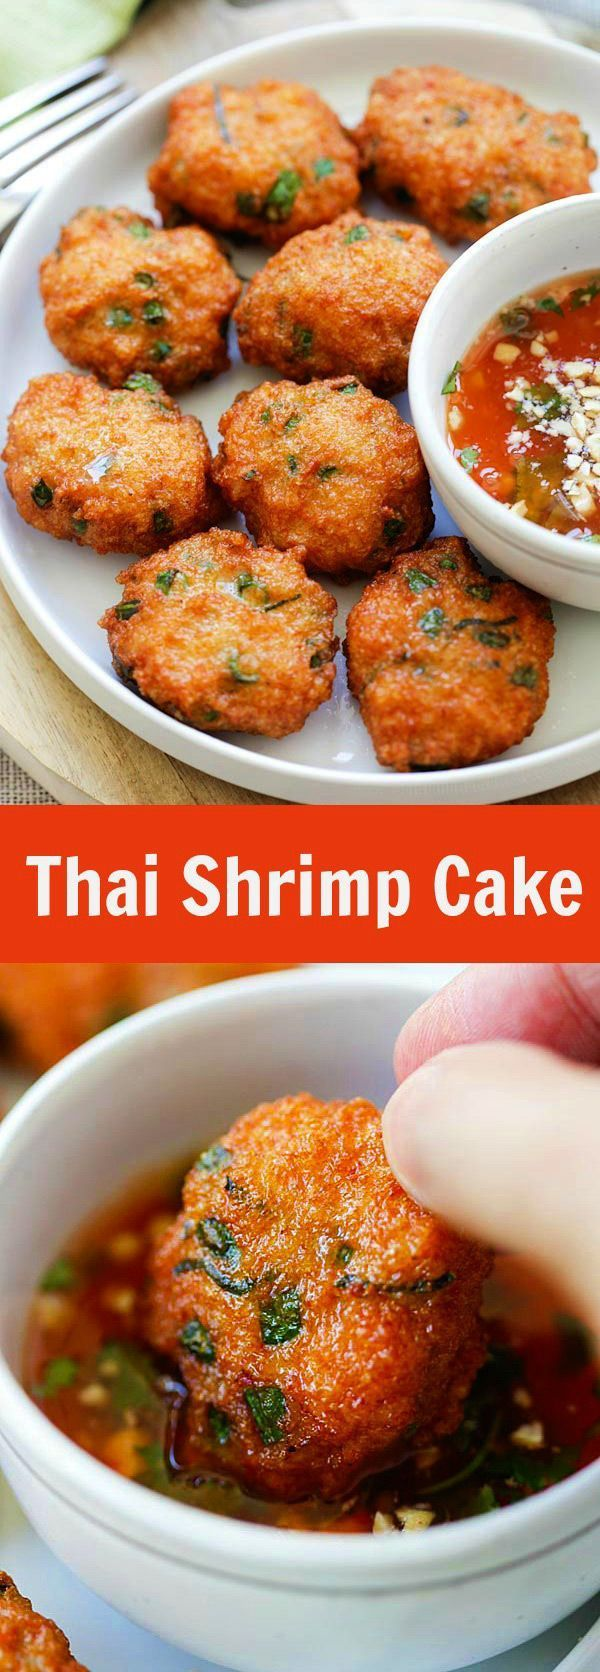 Thai Shrimp Cake – best Thai shrimp cake recipe loaded with shrimp, red curry, long beans and served with sweet chili sauce. So good   rasamalaysia.com